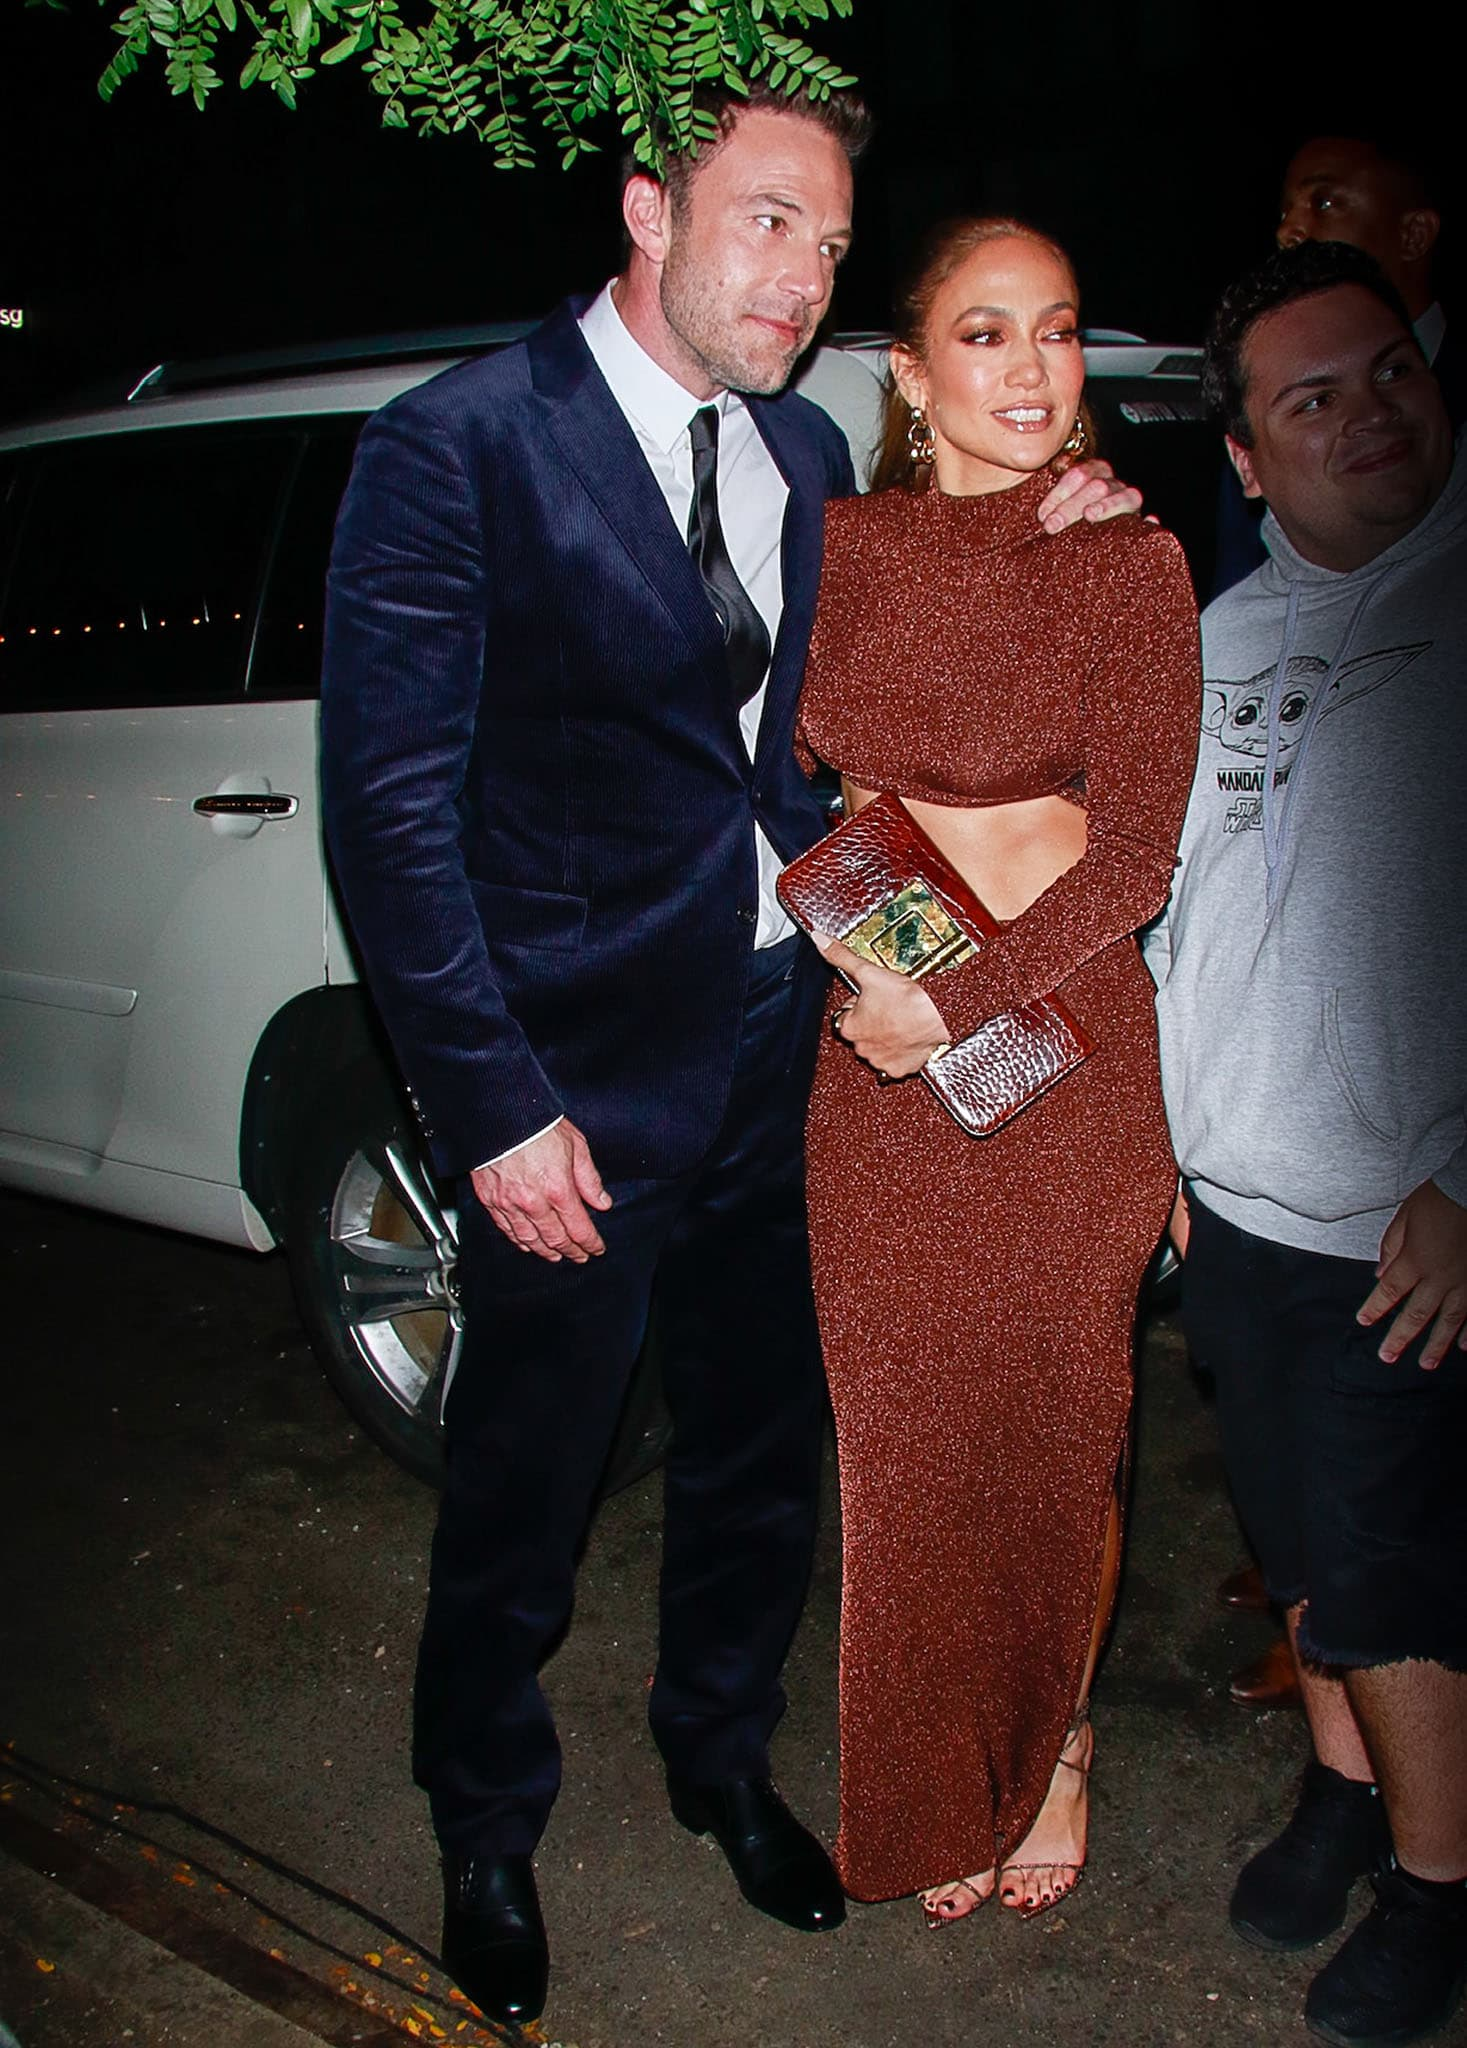 Ben Affleck and Jennifer Lopez arriving at the Lincoln Center for The Last Duel New York City premiere on October 9, 2021